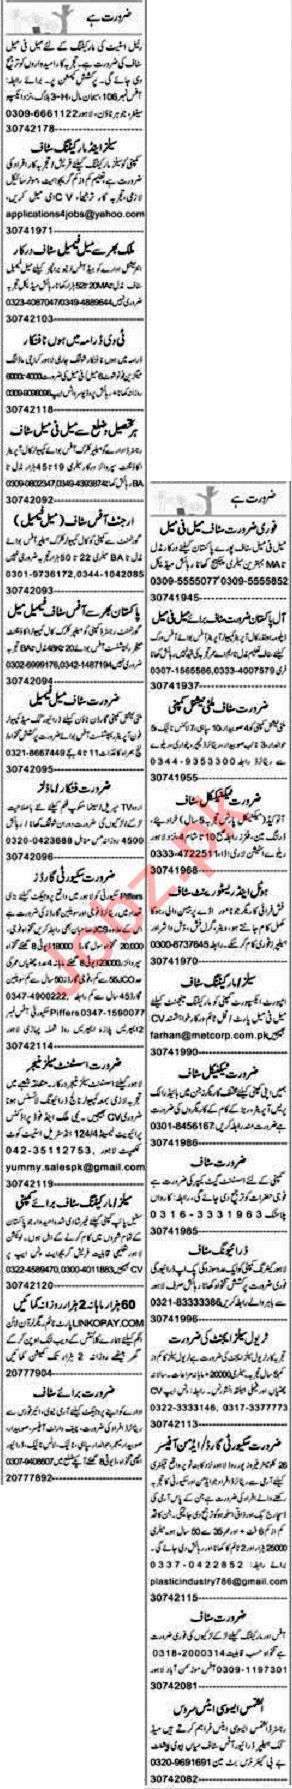 Express Sunday Lahore Classified Ads 6 Sep 2020